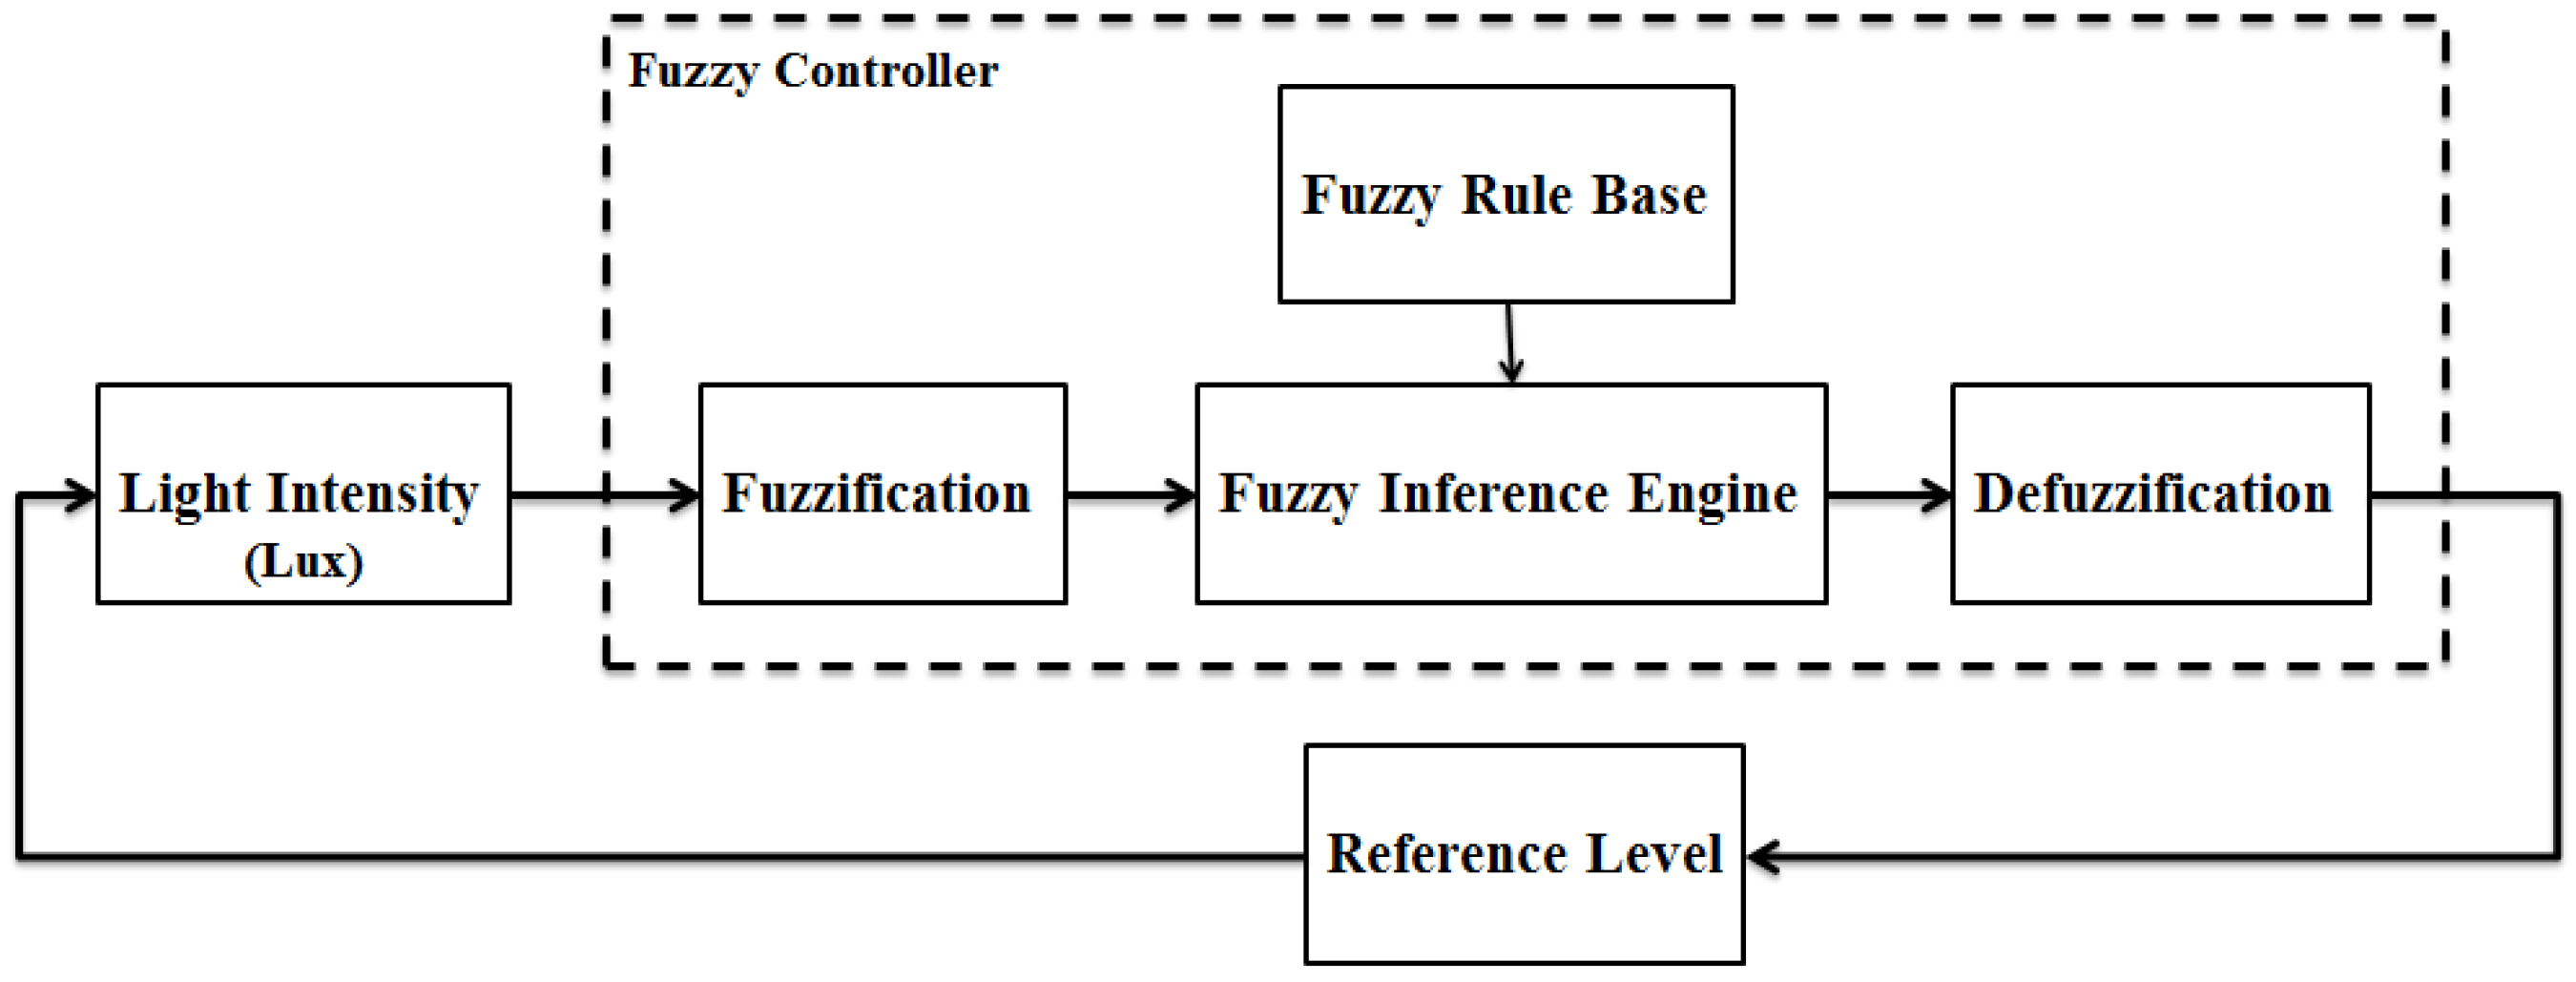 fuzzy control systems Preface, contents the structure of fuzzy systems and how they work 1 fuzzy control function blocks product overview 2 the fuzzy control function blocks 3 fuzzy control.